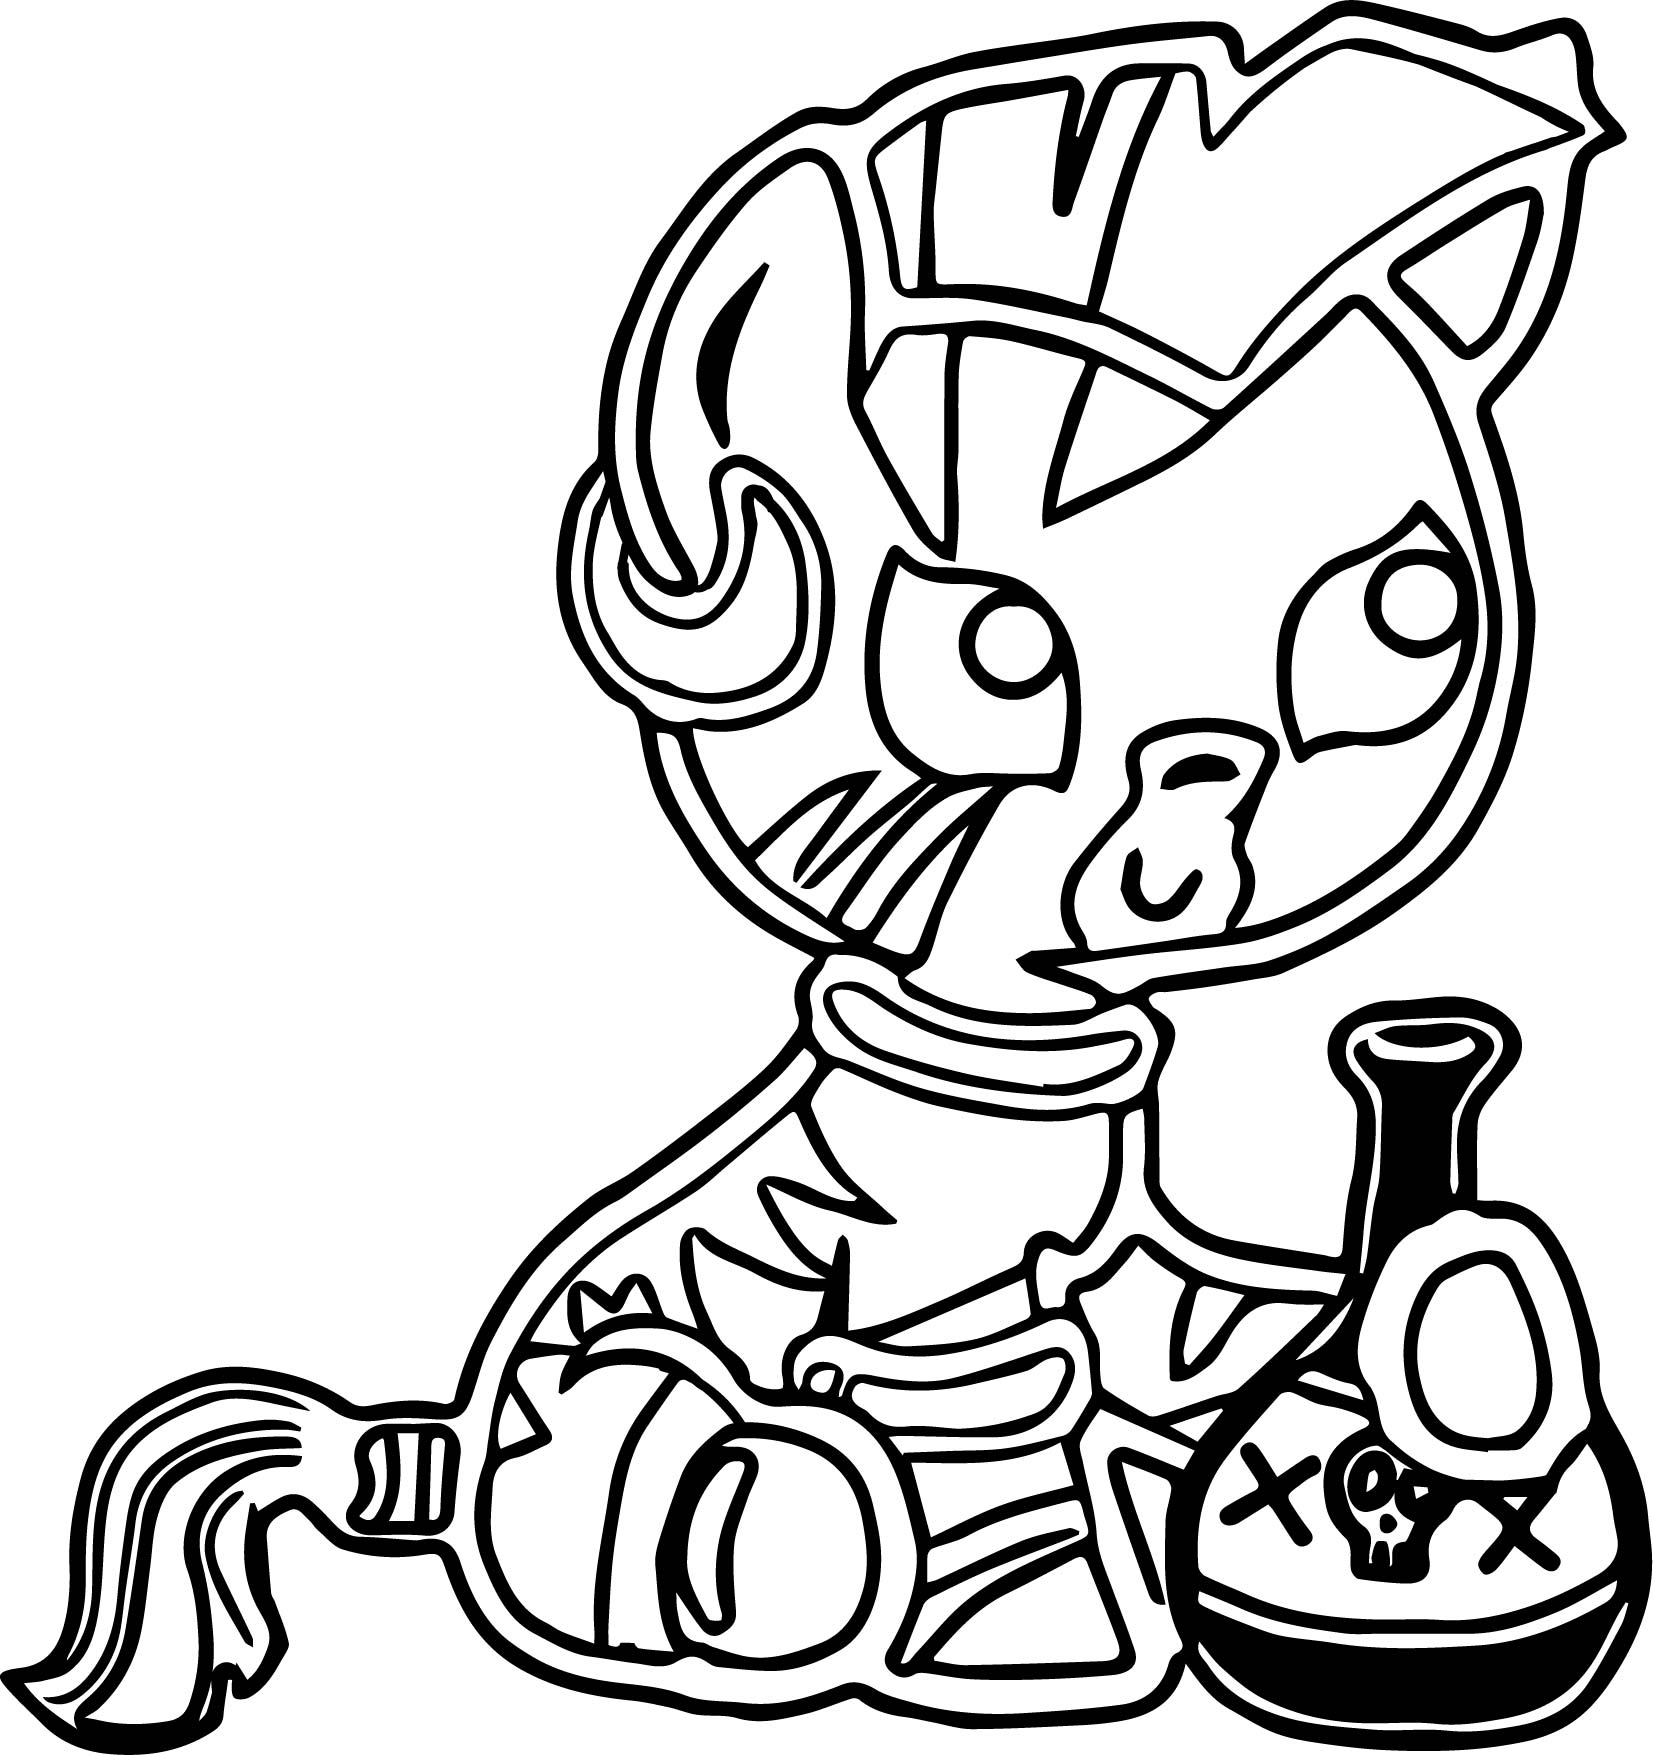 Baby Zecora Danger Bottle Coloring Page